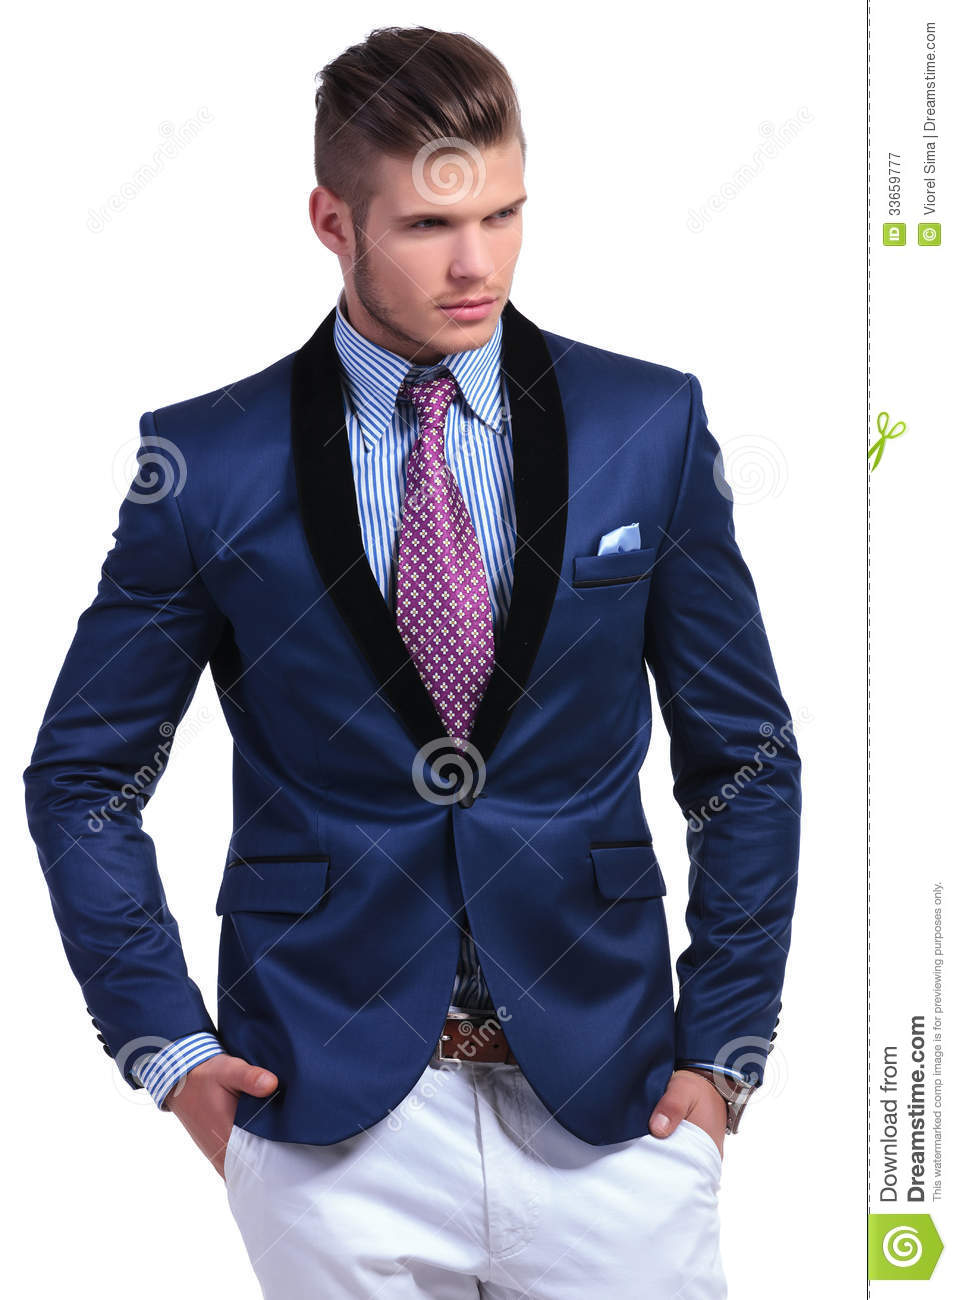 Young Business Man With Both Hands In Pockets Royalty Free